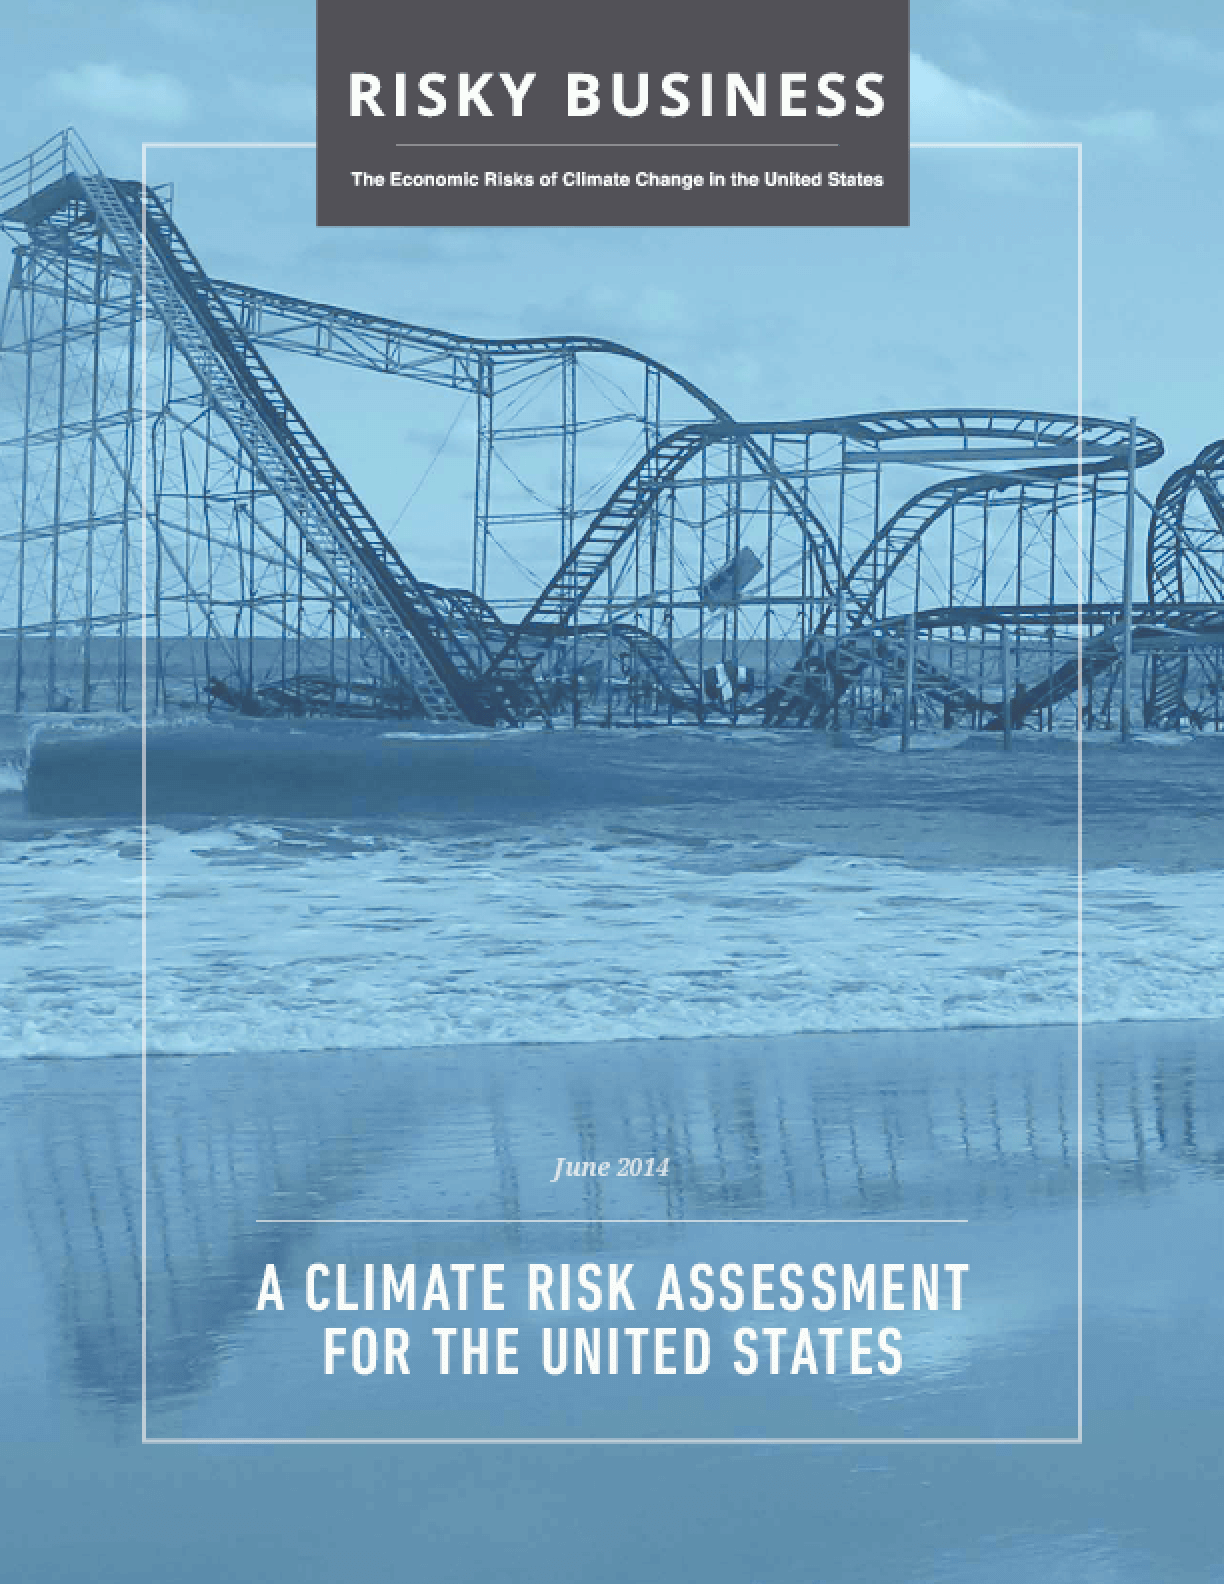 Risky Business: The Economic Risks of Climate Change in the United States